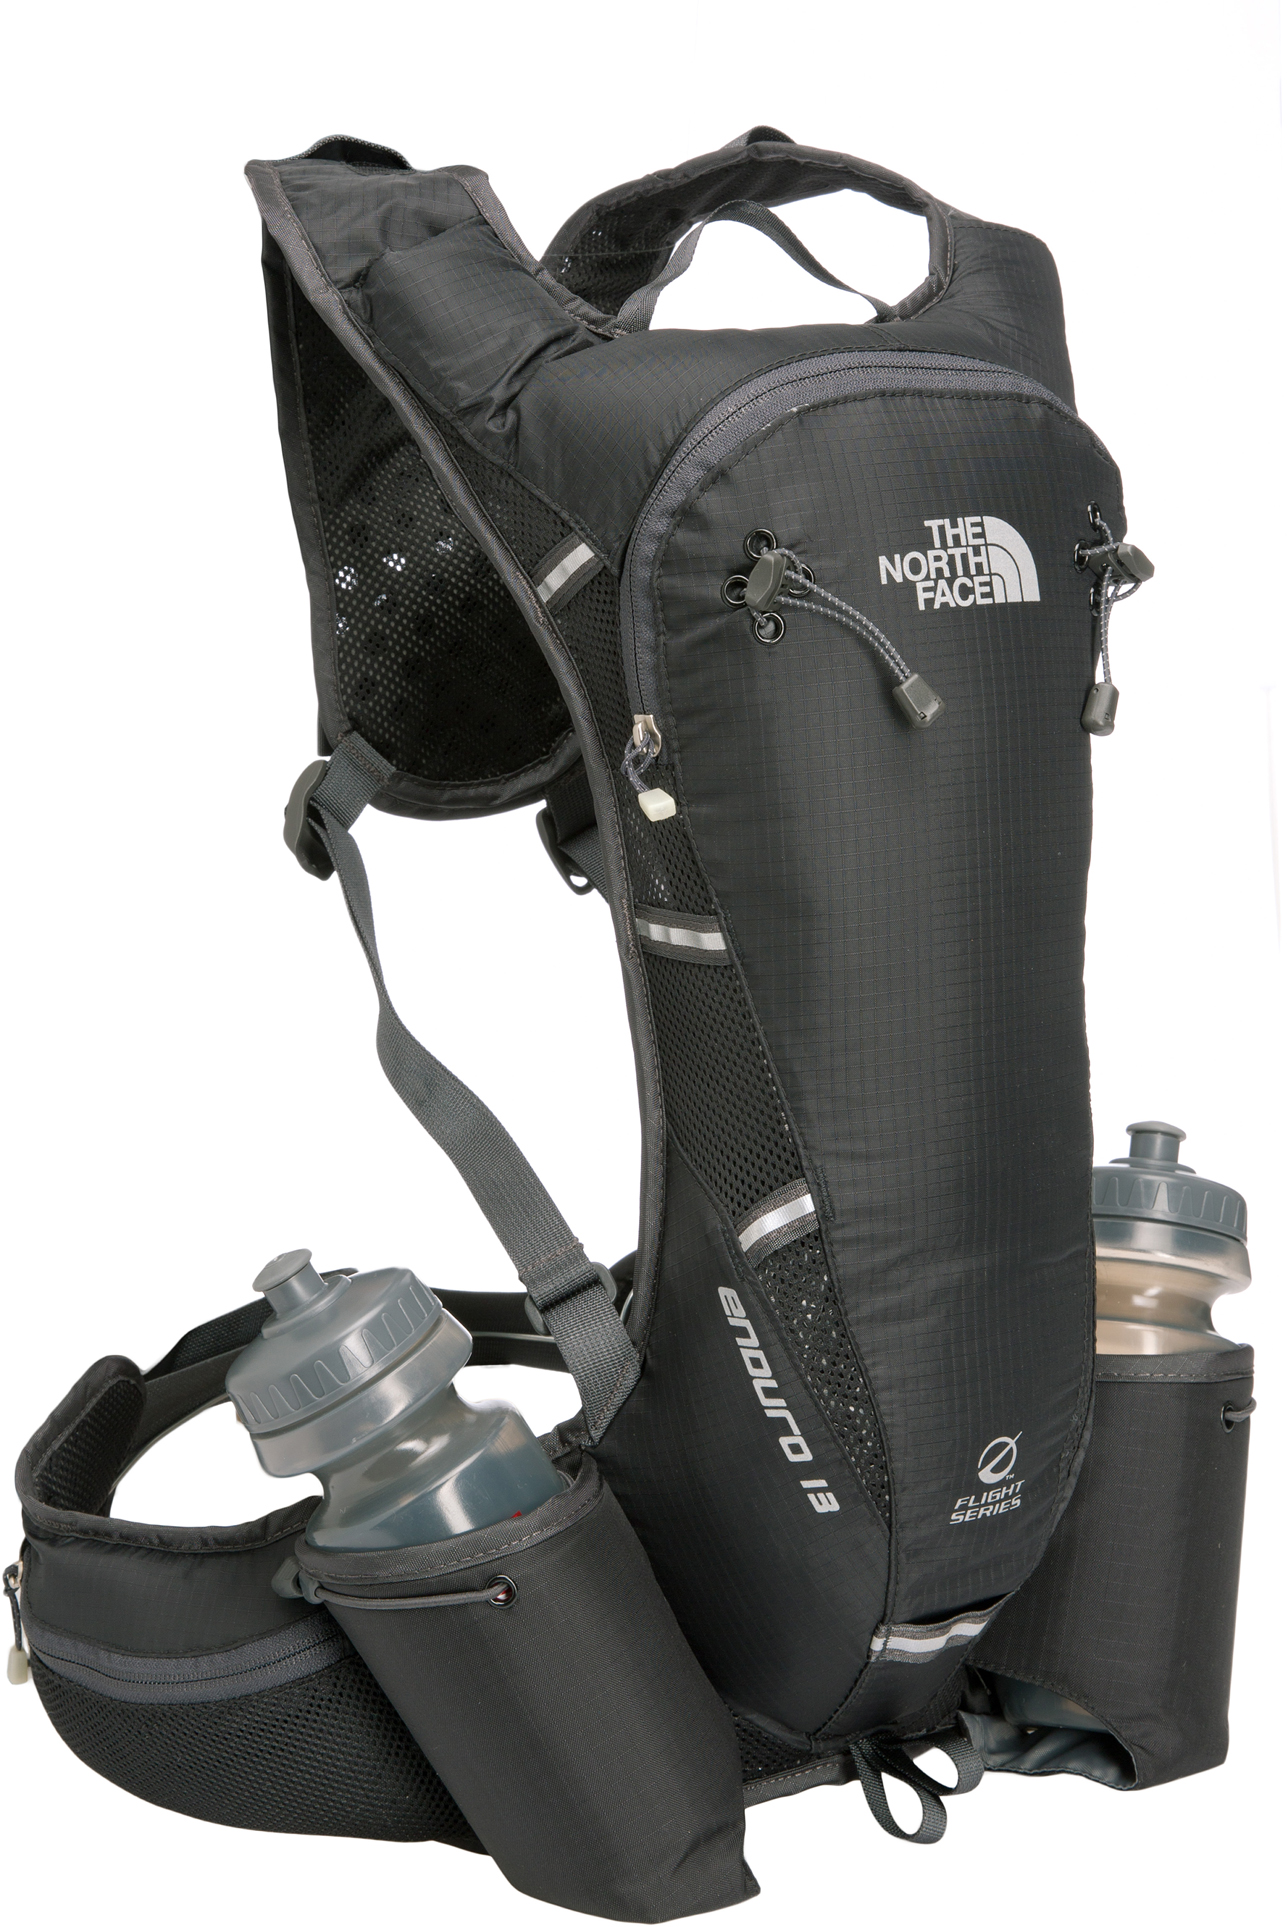 The North Face Enduro 13 Hydration Pack